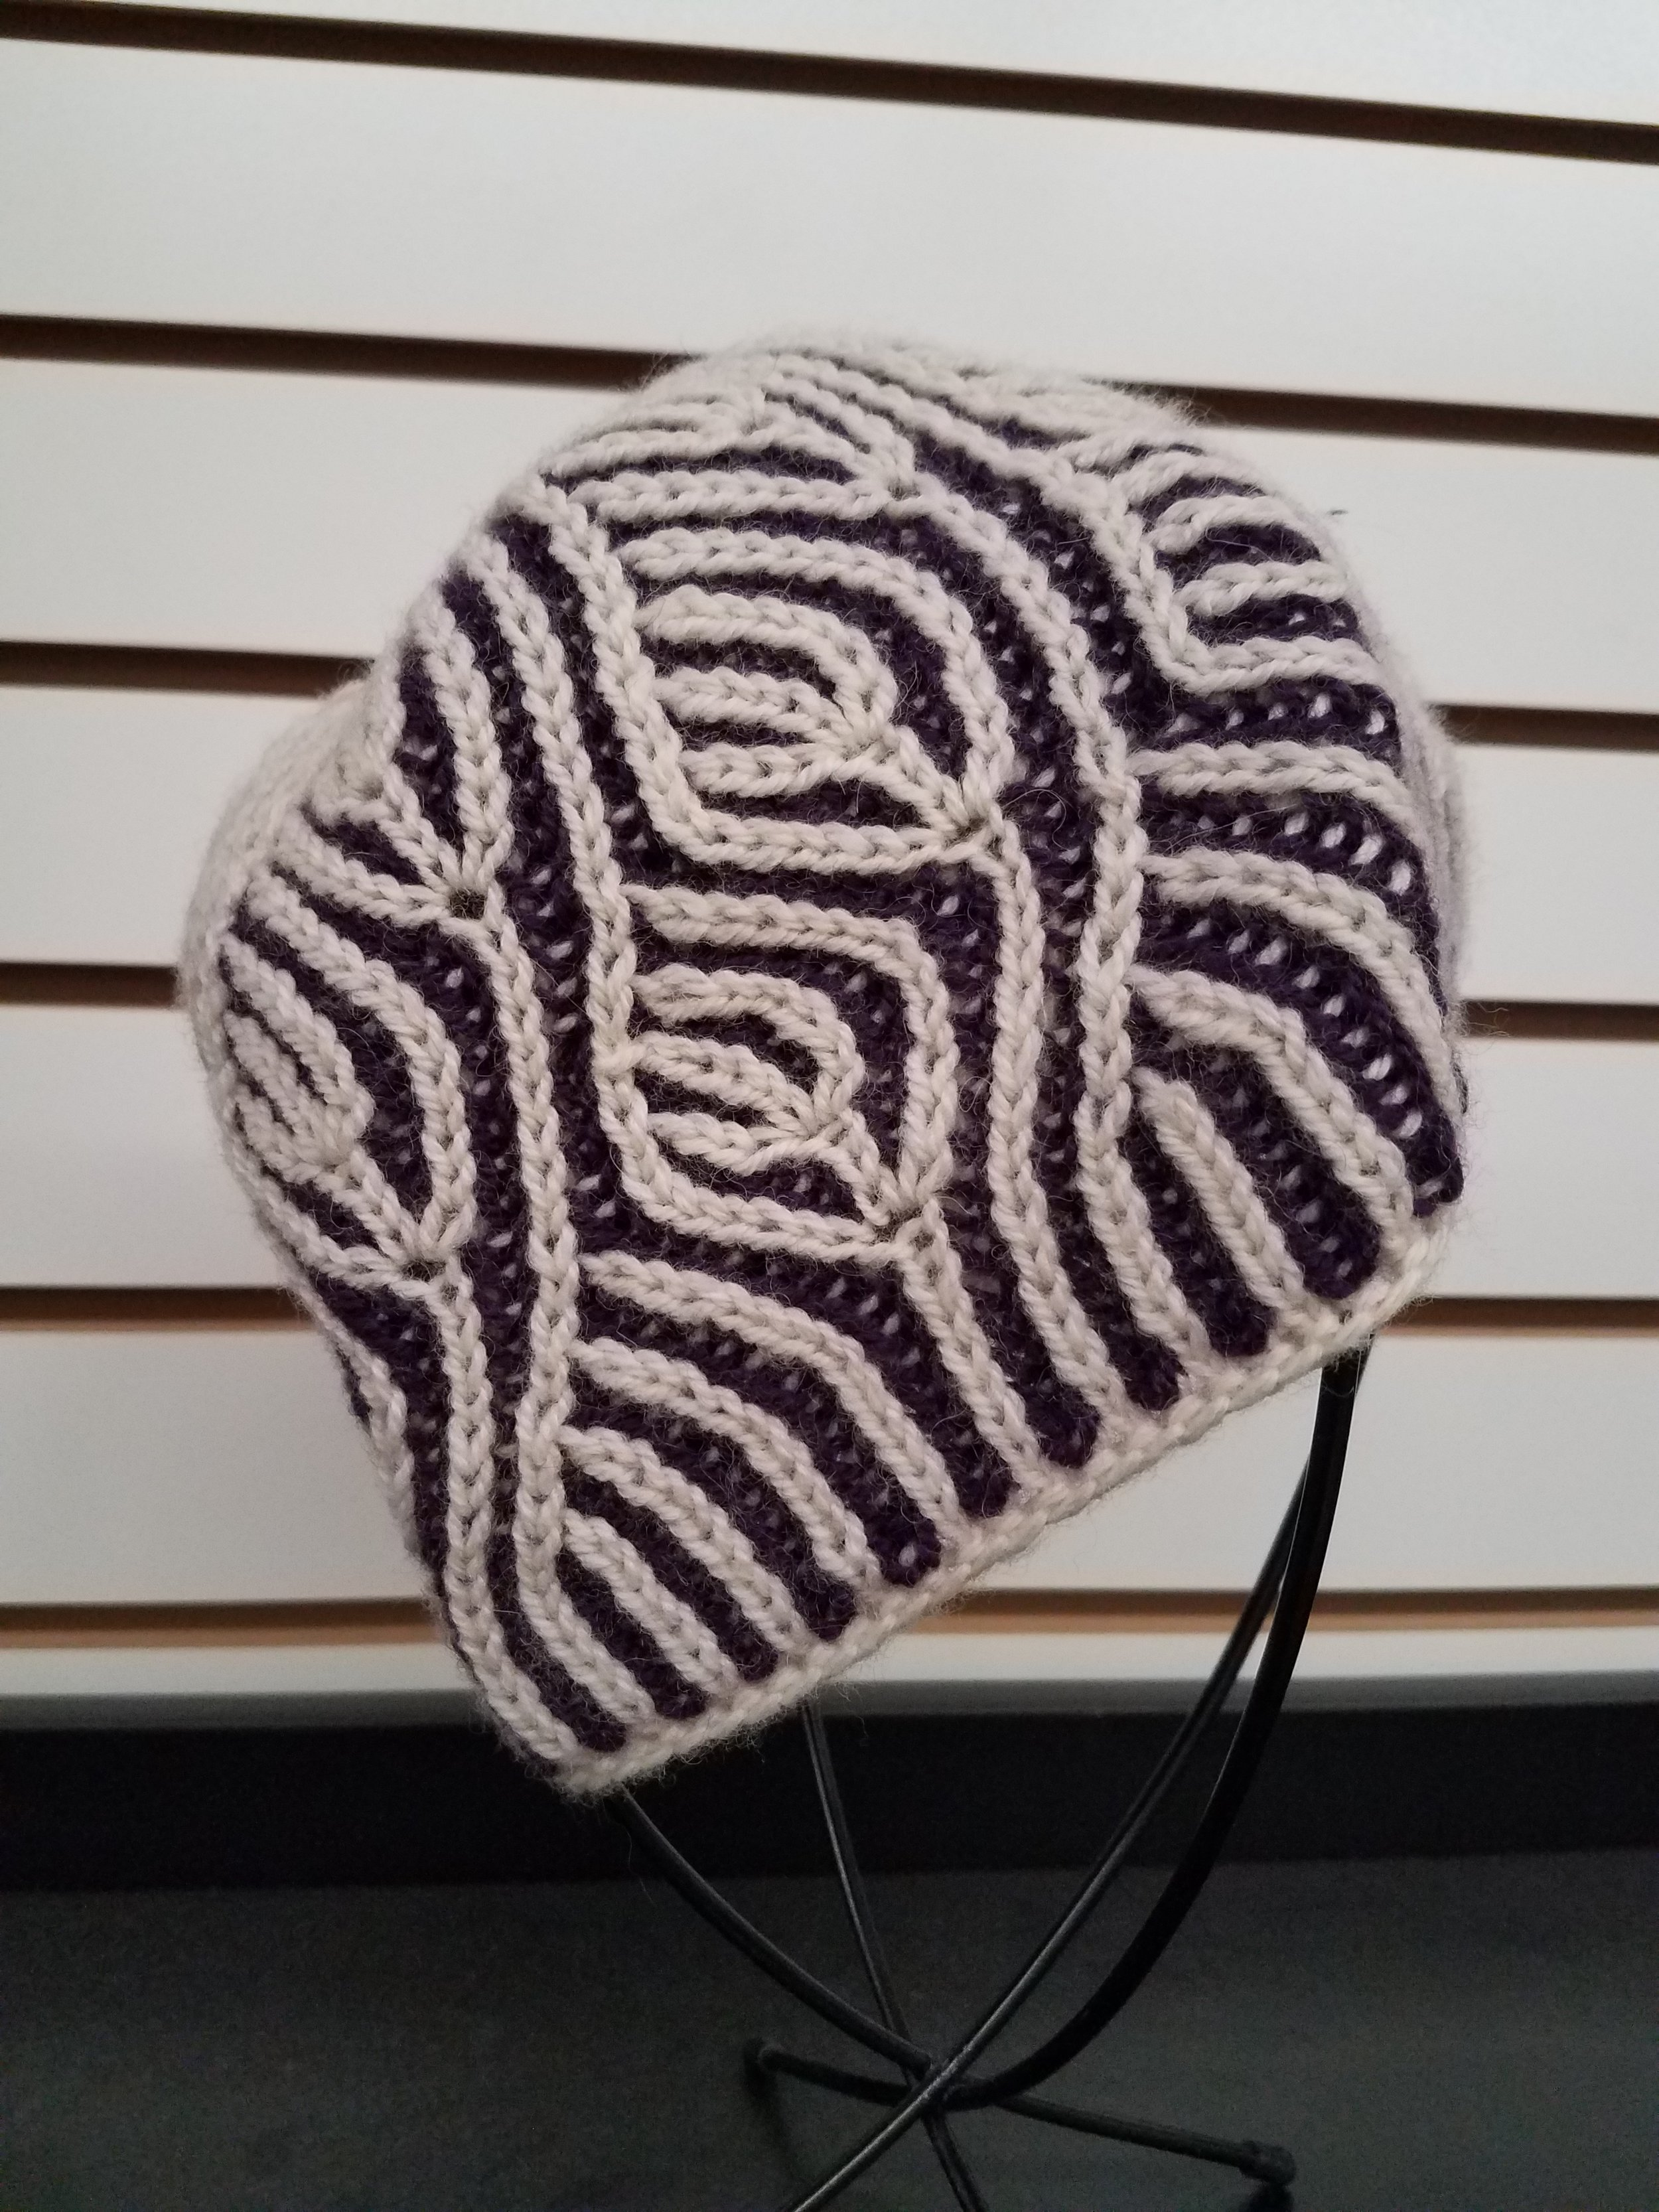 808b940bfb677 clearance styleride solid slouchy ring beanie cap 5ae50 9ebbe  store  camella hat a study in brioche knitting with jane b173e 92b7b